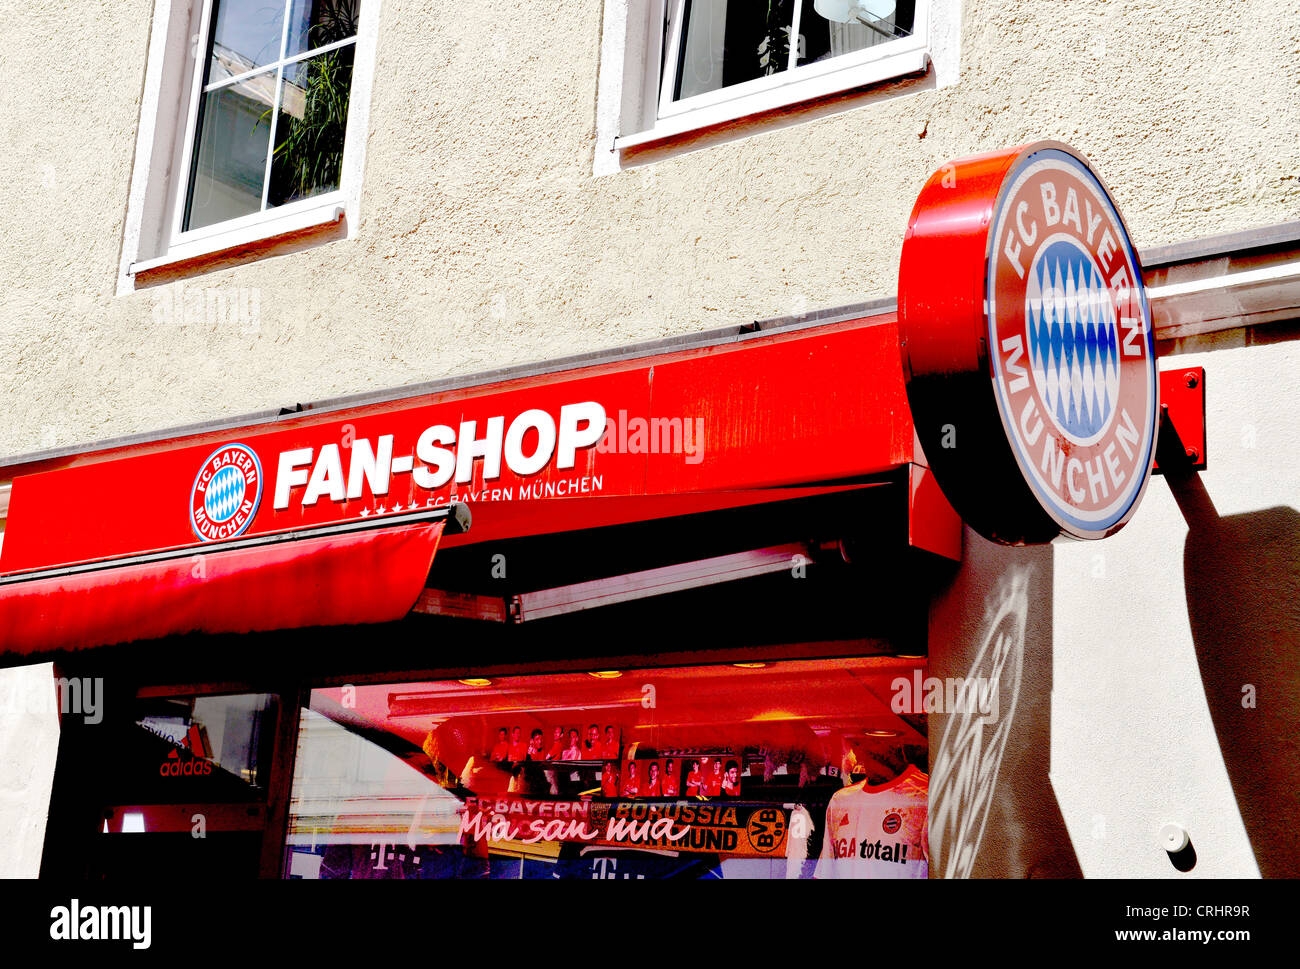 Fan shop of the soccer club Bayern München - Stock Image